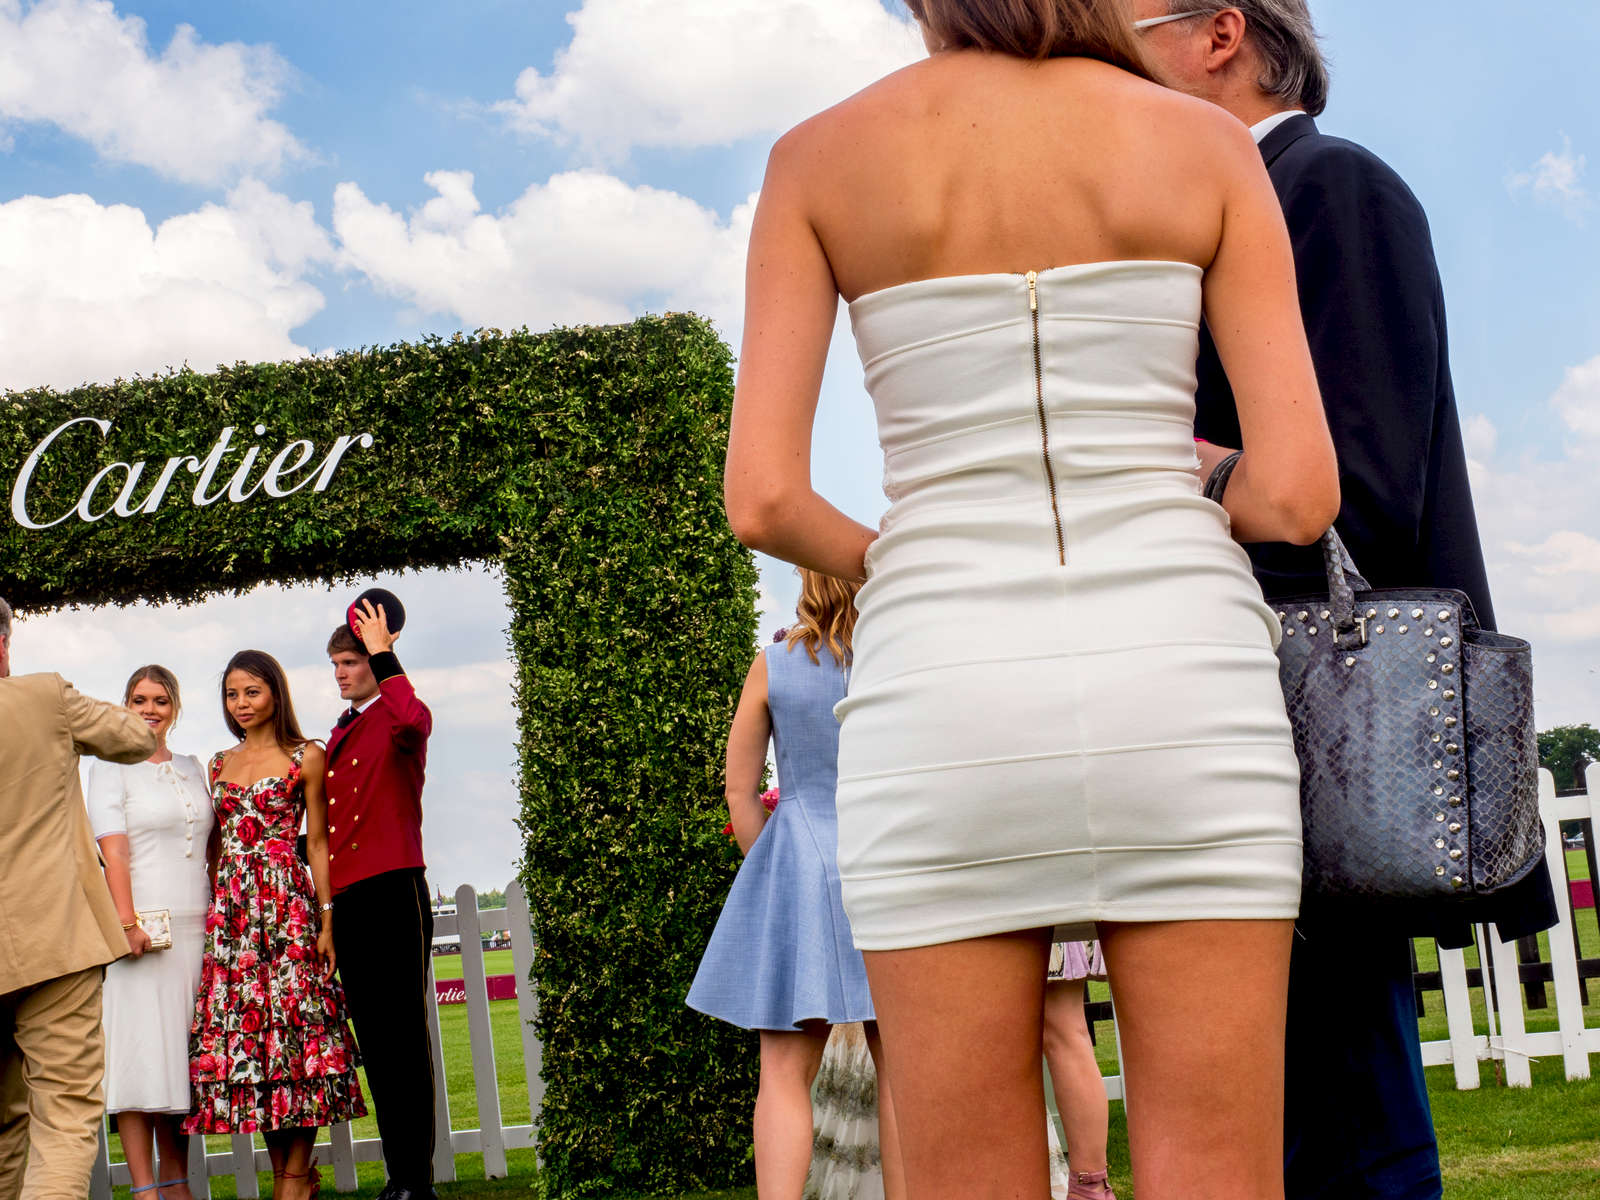 VIP gueats socialise in the Cartier marquee.The 2017 Cartier Queen's Cup Final was played at the Guards Polo Club located in Windsor Great Park.